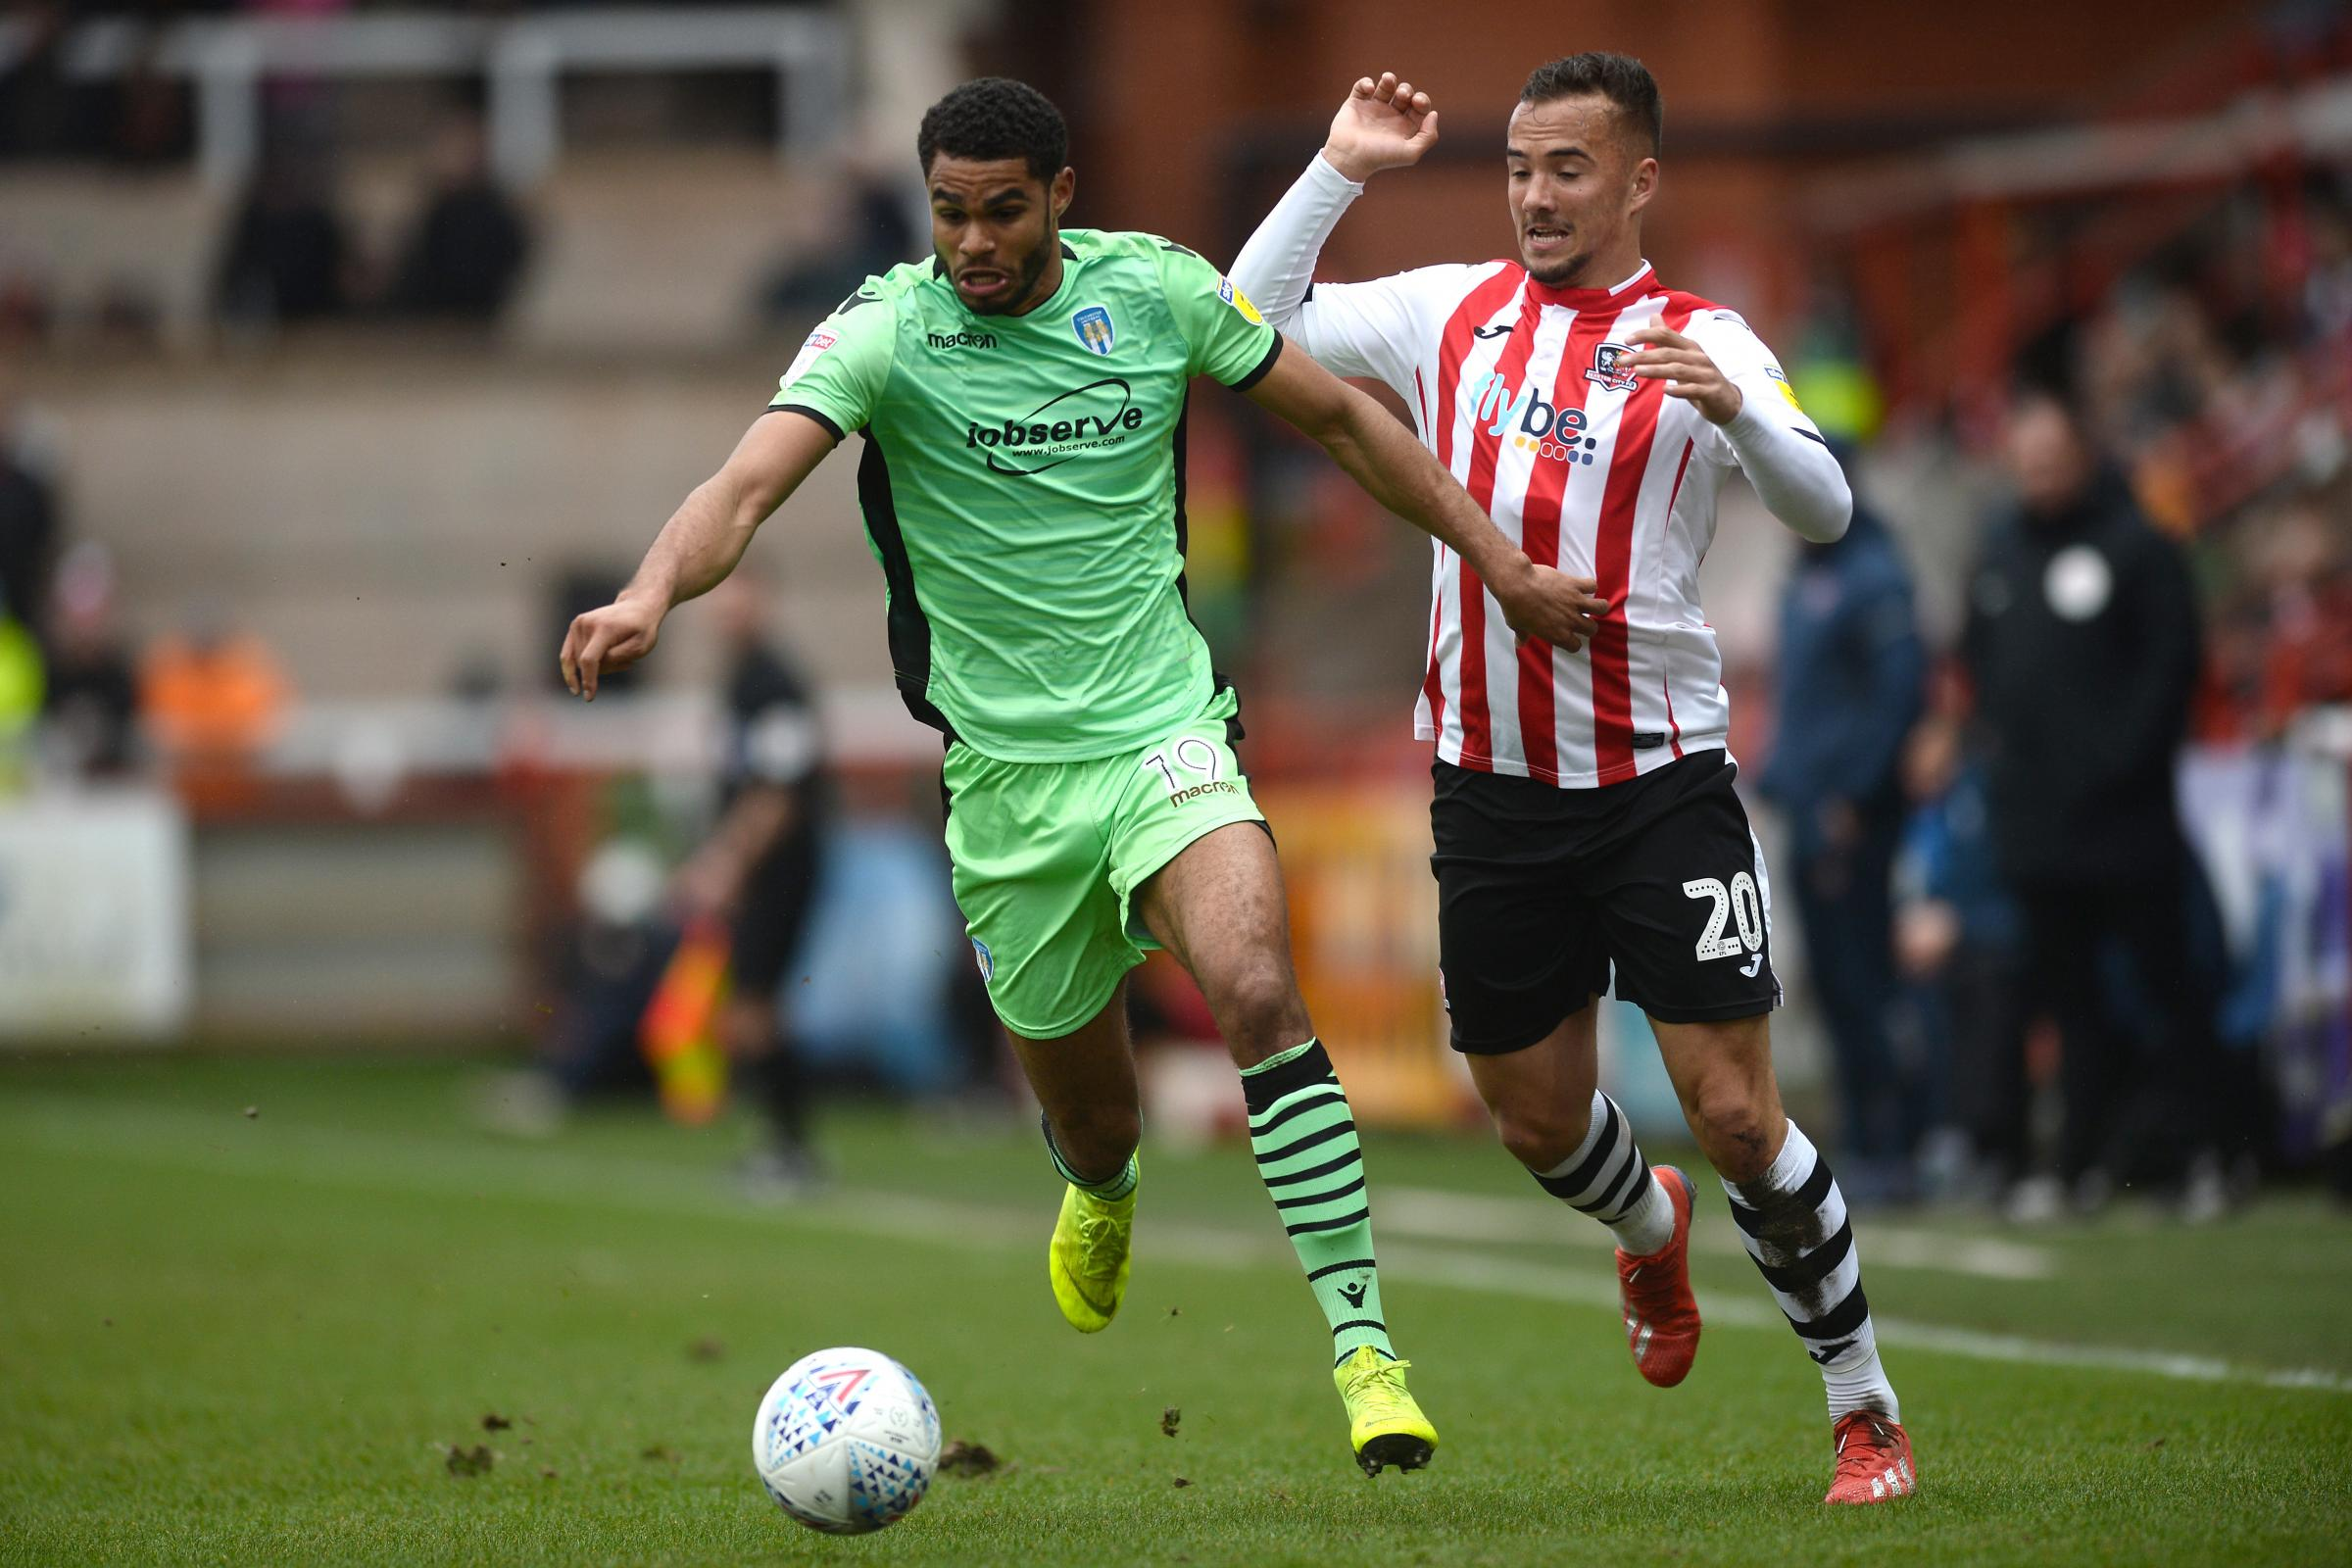 Mikael Mandron of Colchester United looks to get past Kane Wilson of Exeter City - Exeter City vs. Colchester United - Sky Bet League Two - St James Park, Exeter - 15/03/2019 - Photo by: Richard Blaxall.